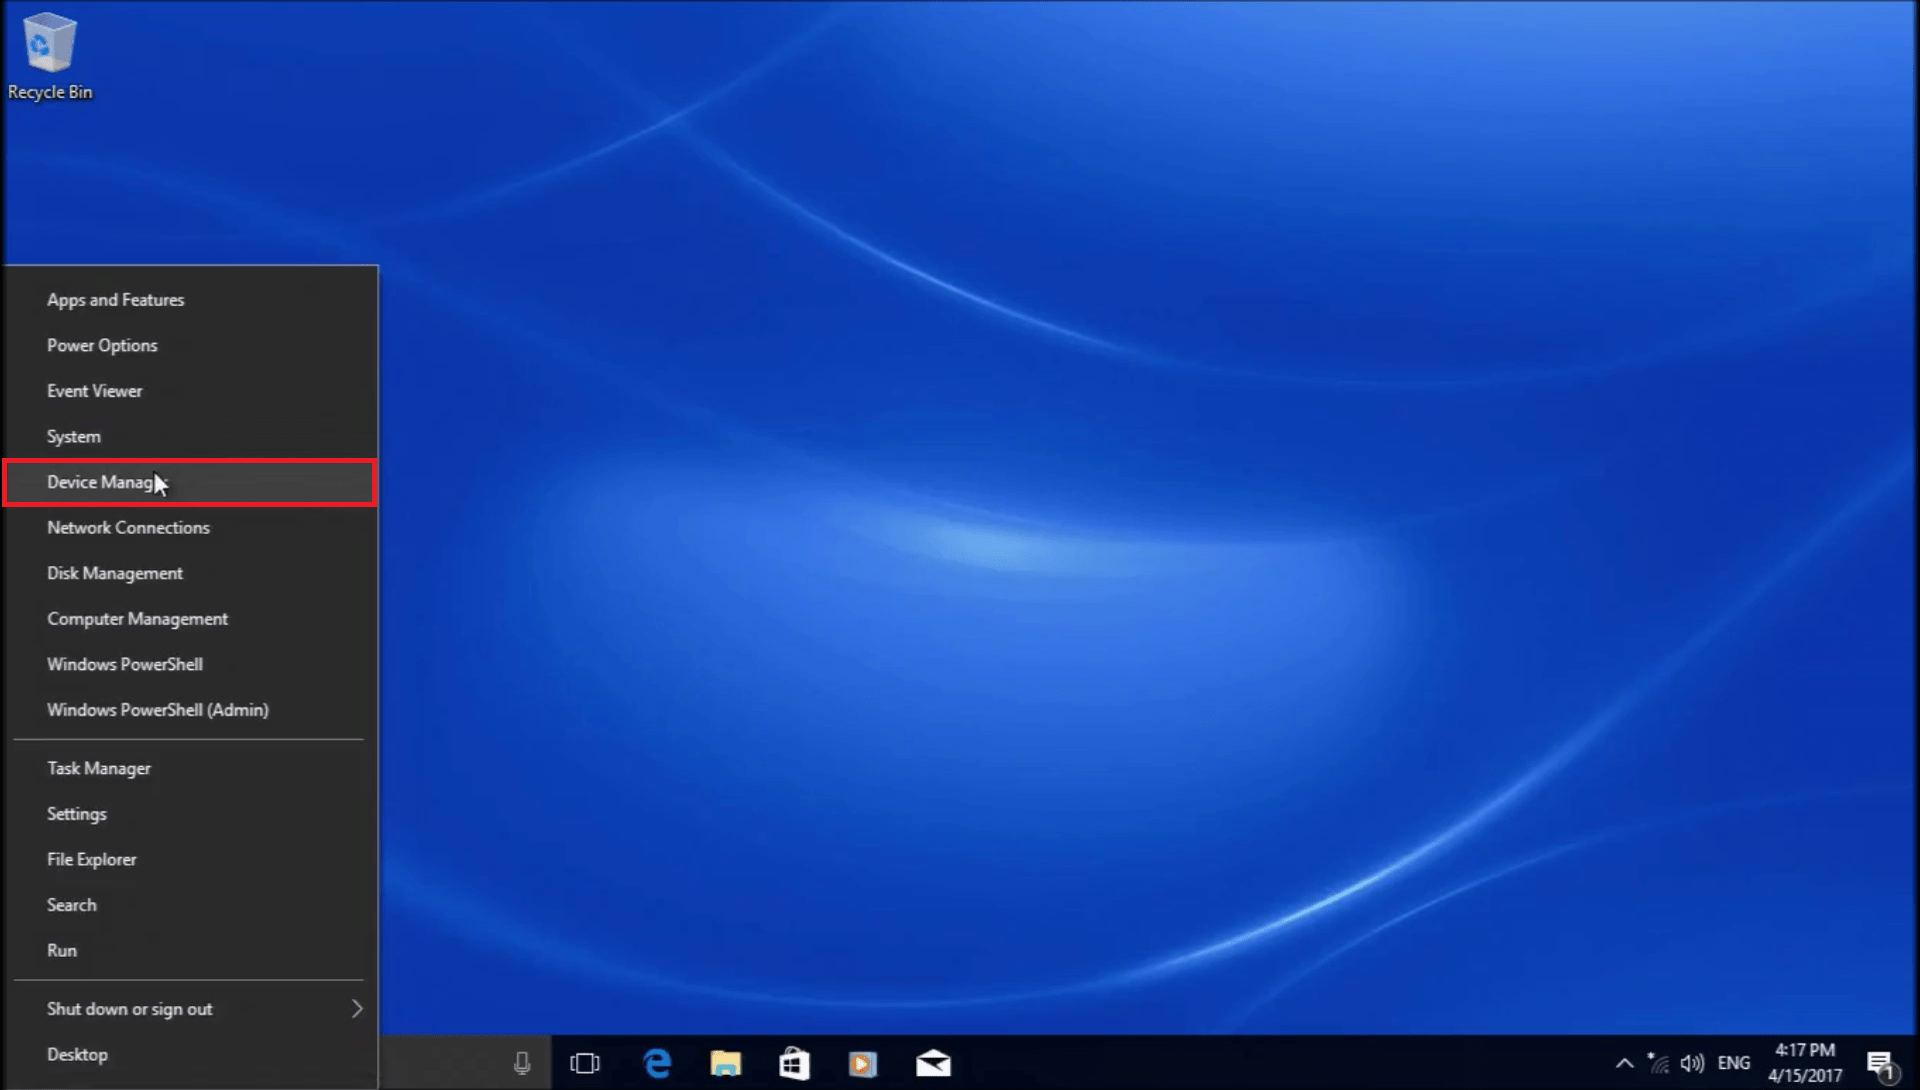 Stuck On Windows 10 Screen Due To Incompatible Wireless Bluetooth Driver Windows 10 Installation Guides